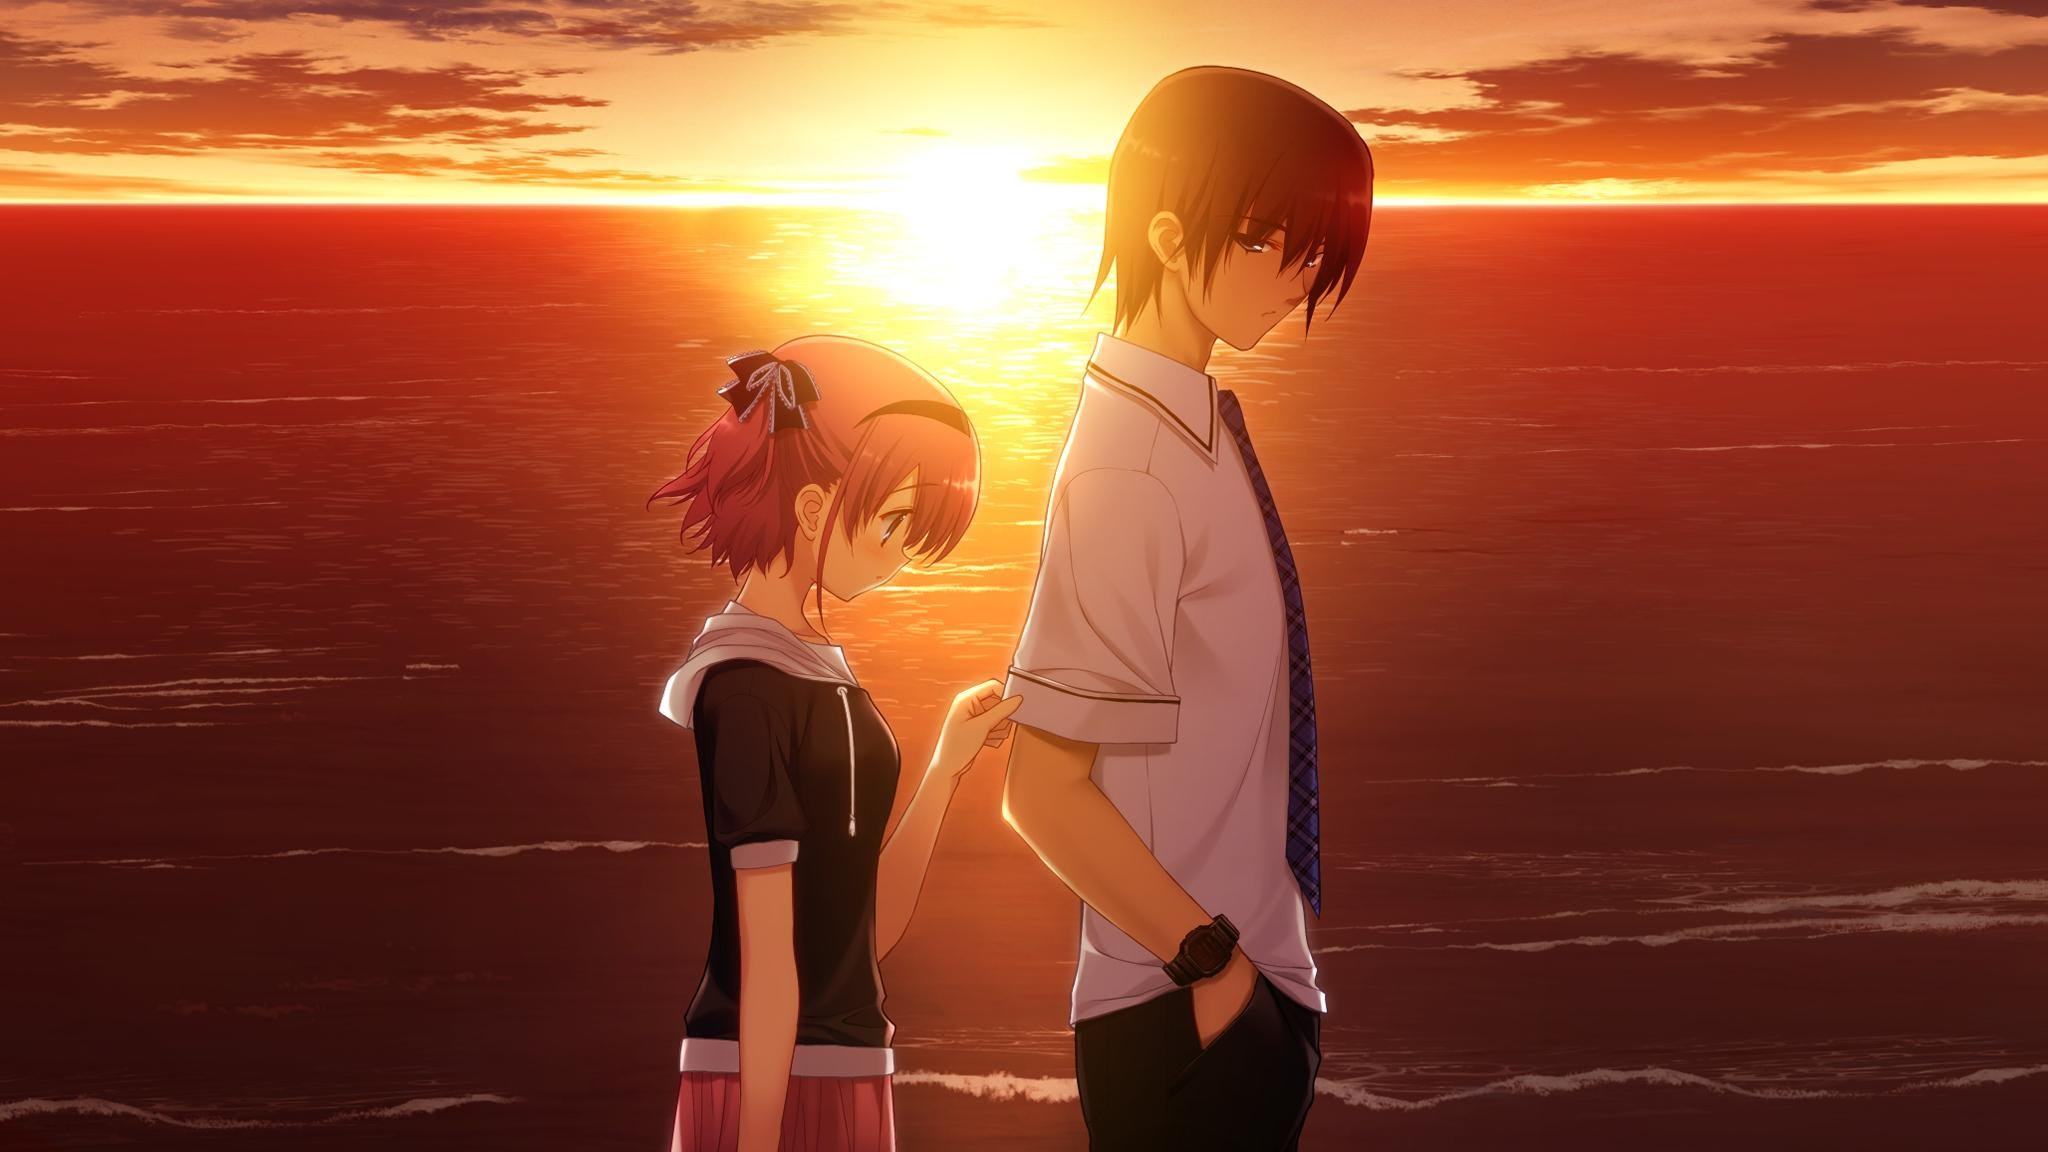 Cute anime couple wallpaper wallpapersafari - Couple wallpaper download ...